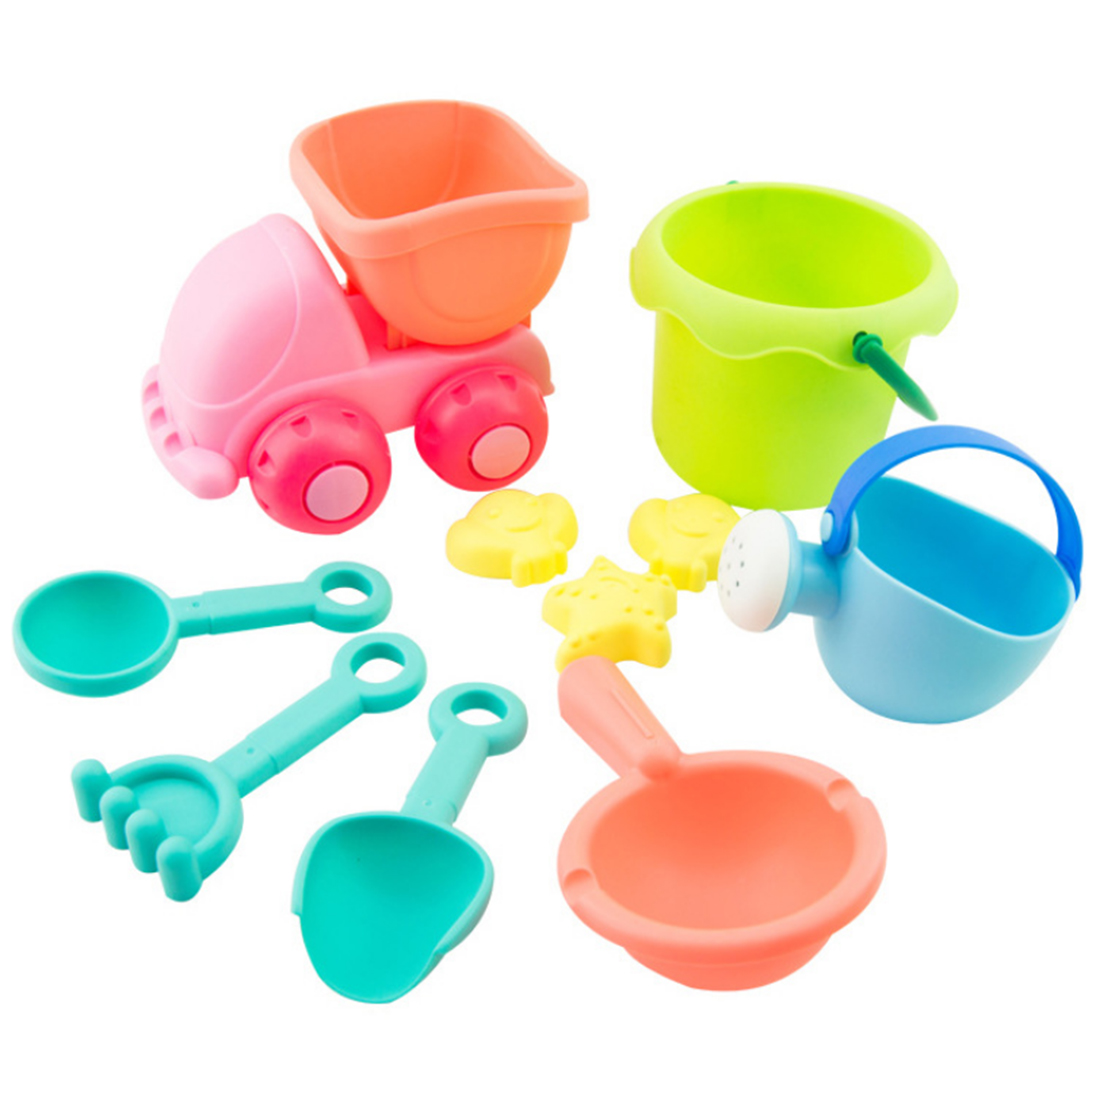 10Pcs Beach Sand Toy Set Bucket Shovels Watering Can Children Safety Soft Plastic Toys - Color Random